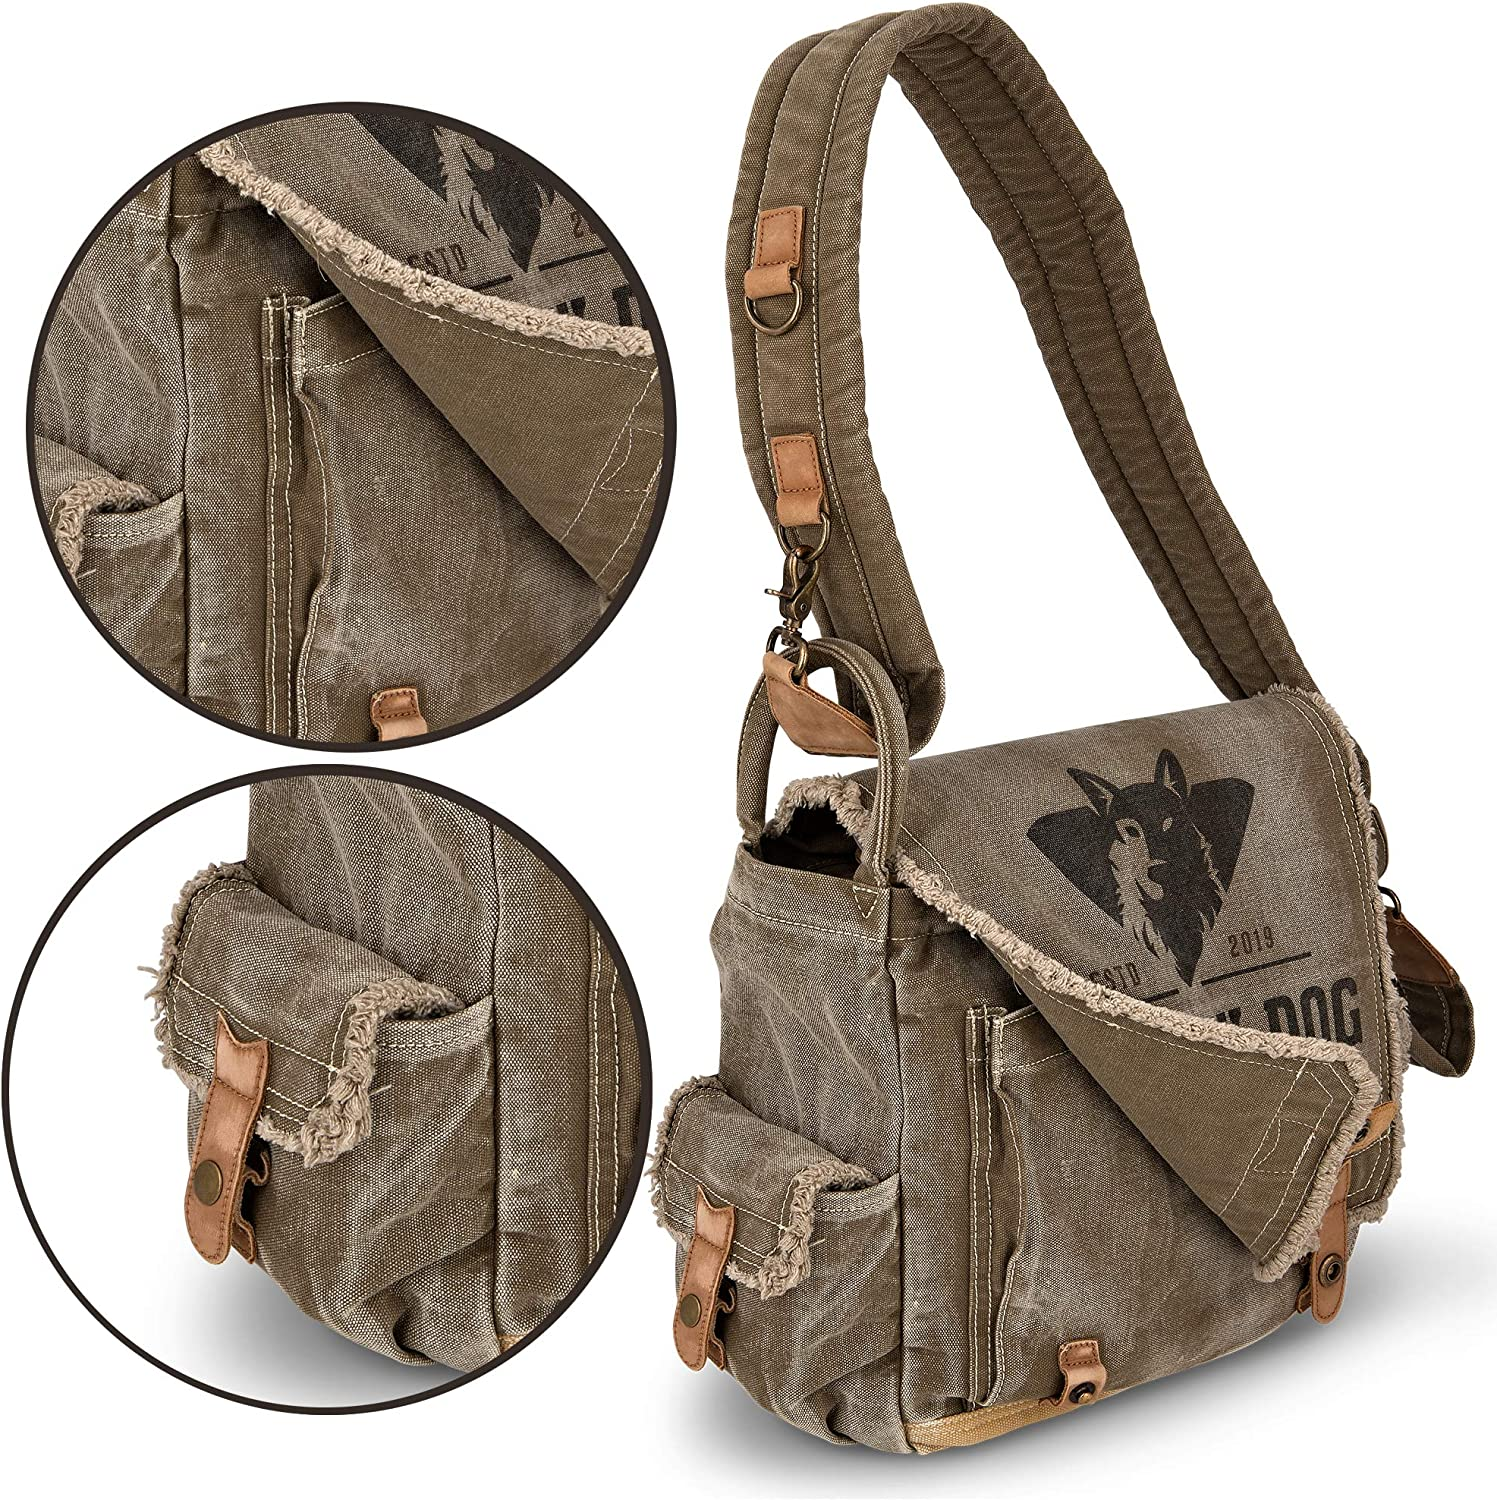 Durable Travel Courier Gear and Accessories Casual Shoulder Bags for Traveling Canvas 13 inch Laptop Satchel for School or Business Vintage Messenger Bag for Men and Women